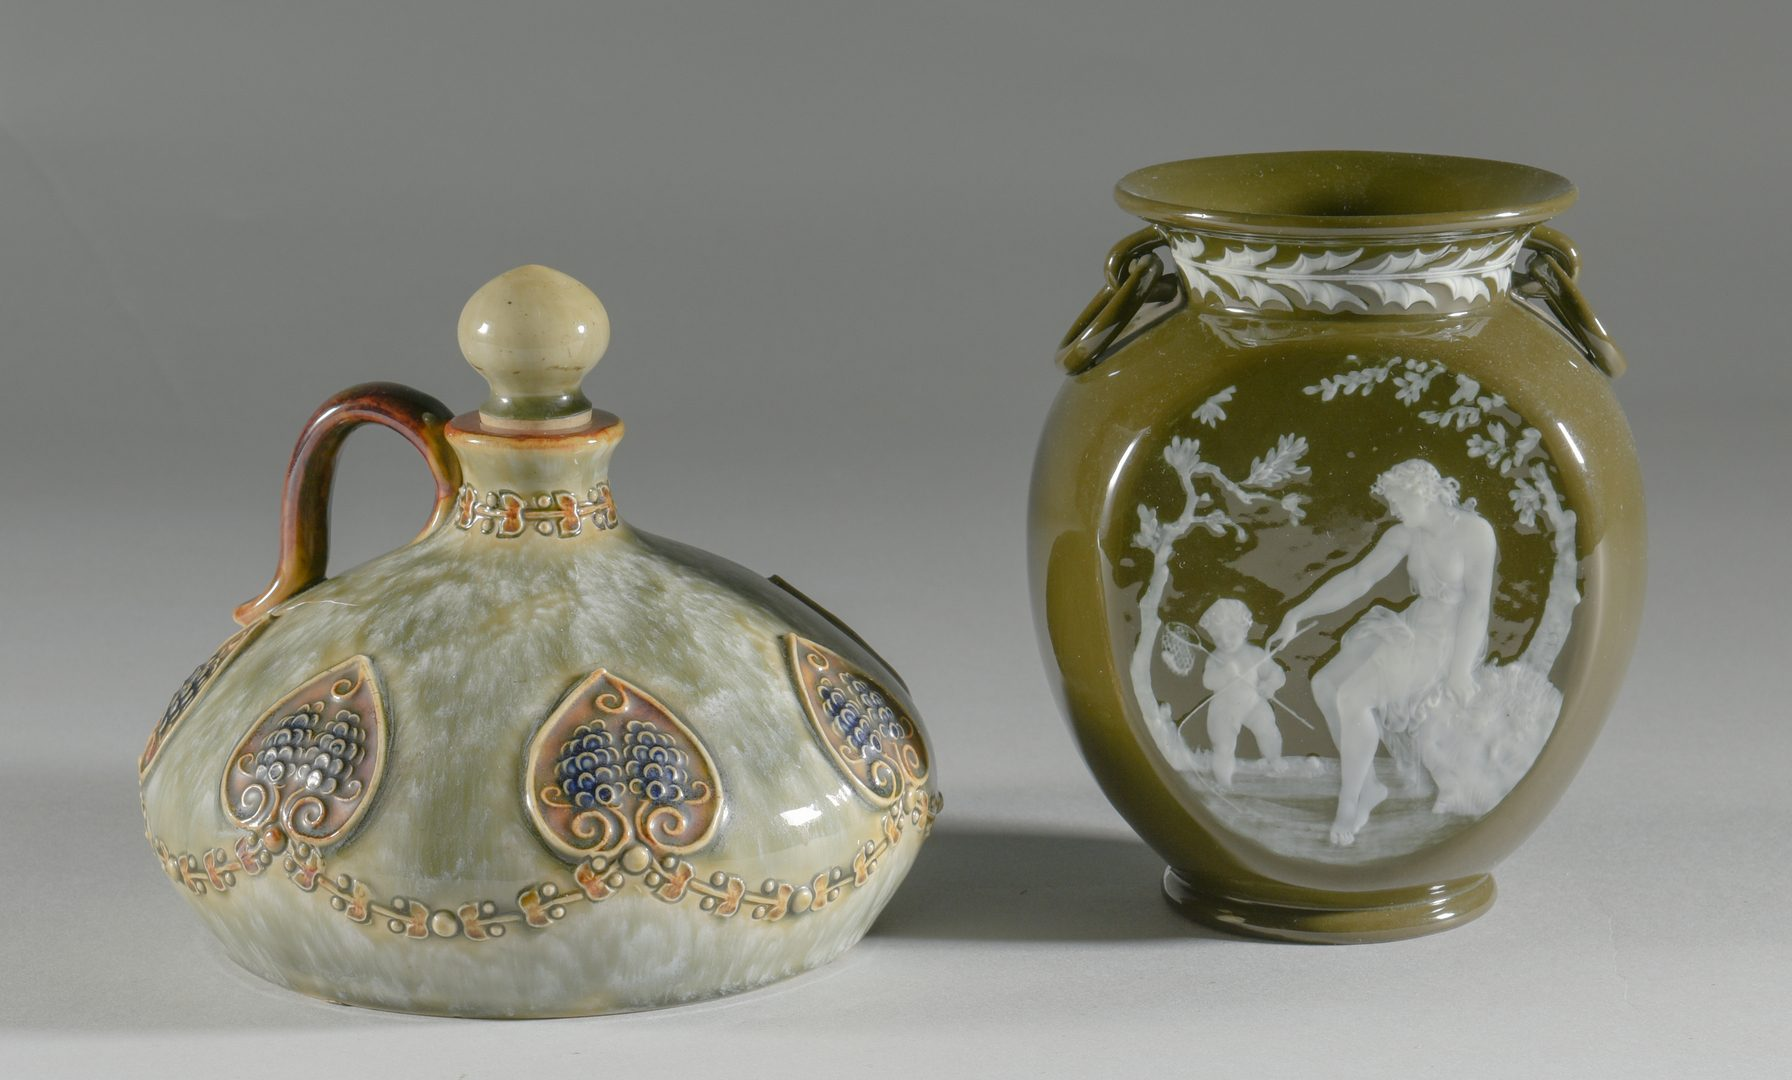 Lot 607: Pate sur Pate Vase and Lambeth Ewer